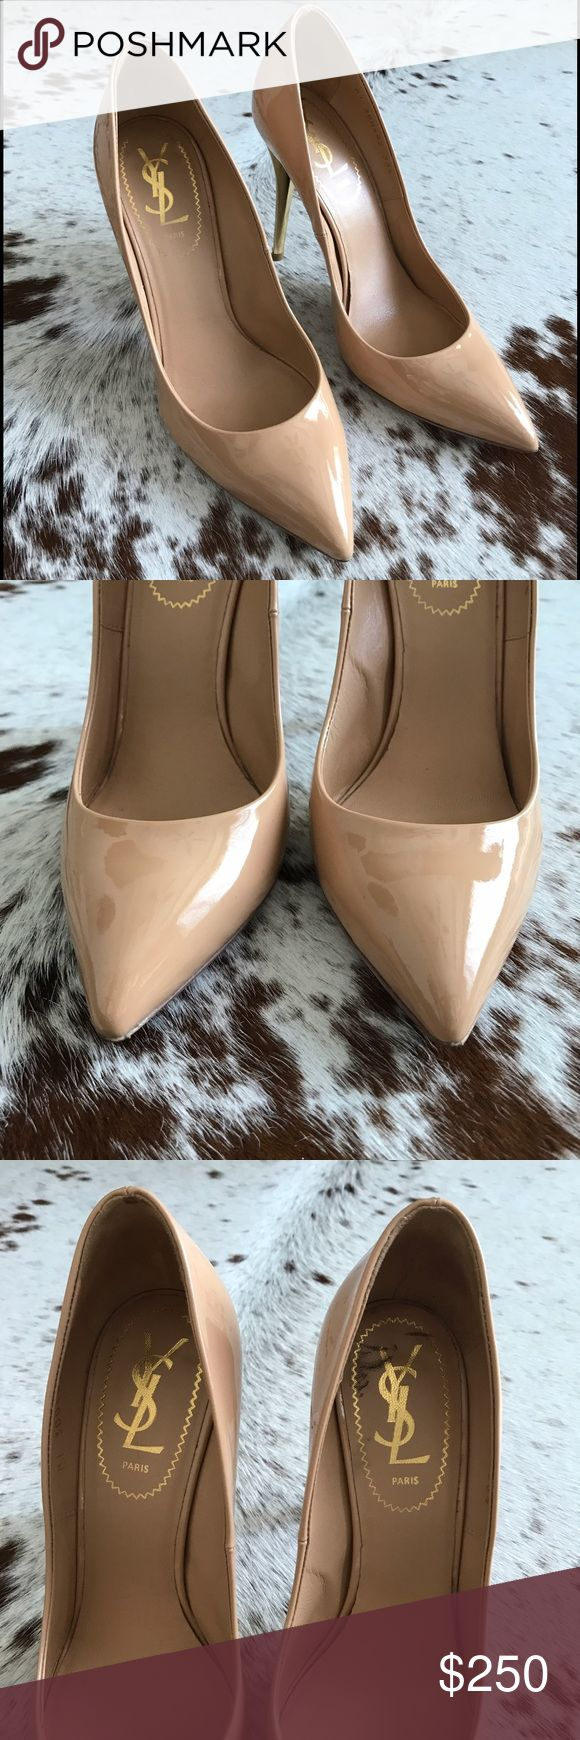 YSL nude patent heels 38.5 Classic Saint Laurent heels in a gorgeous nude color. Wore these a few times but they are just a big too big on me. Gold on the inside of the heels and pointed toes. No marks on the leather. Only flaw is a tiny imperfection in the leather on the back heel as shown in pic. 100% authentic. No box or dust bag. Yves Saint Laurent Shoes Heels